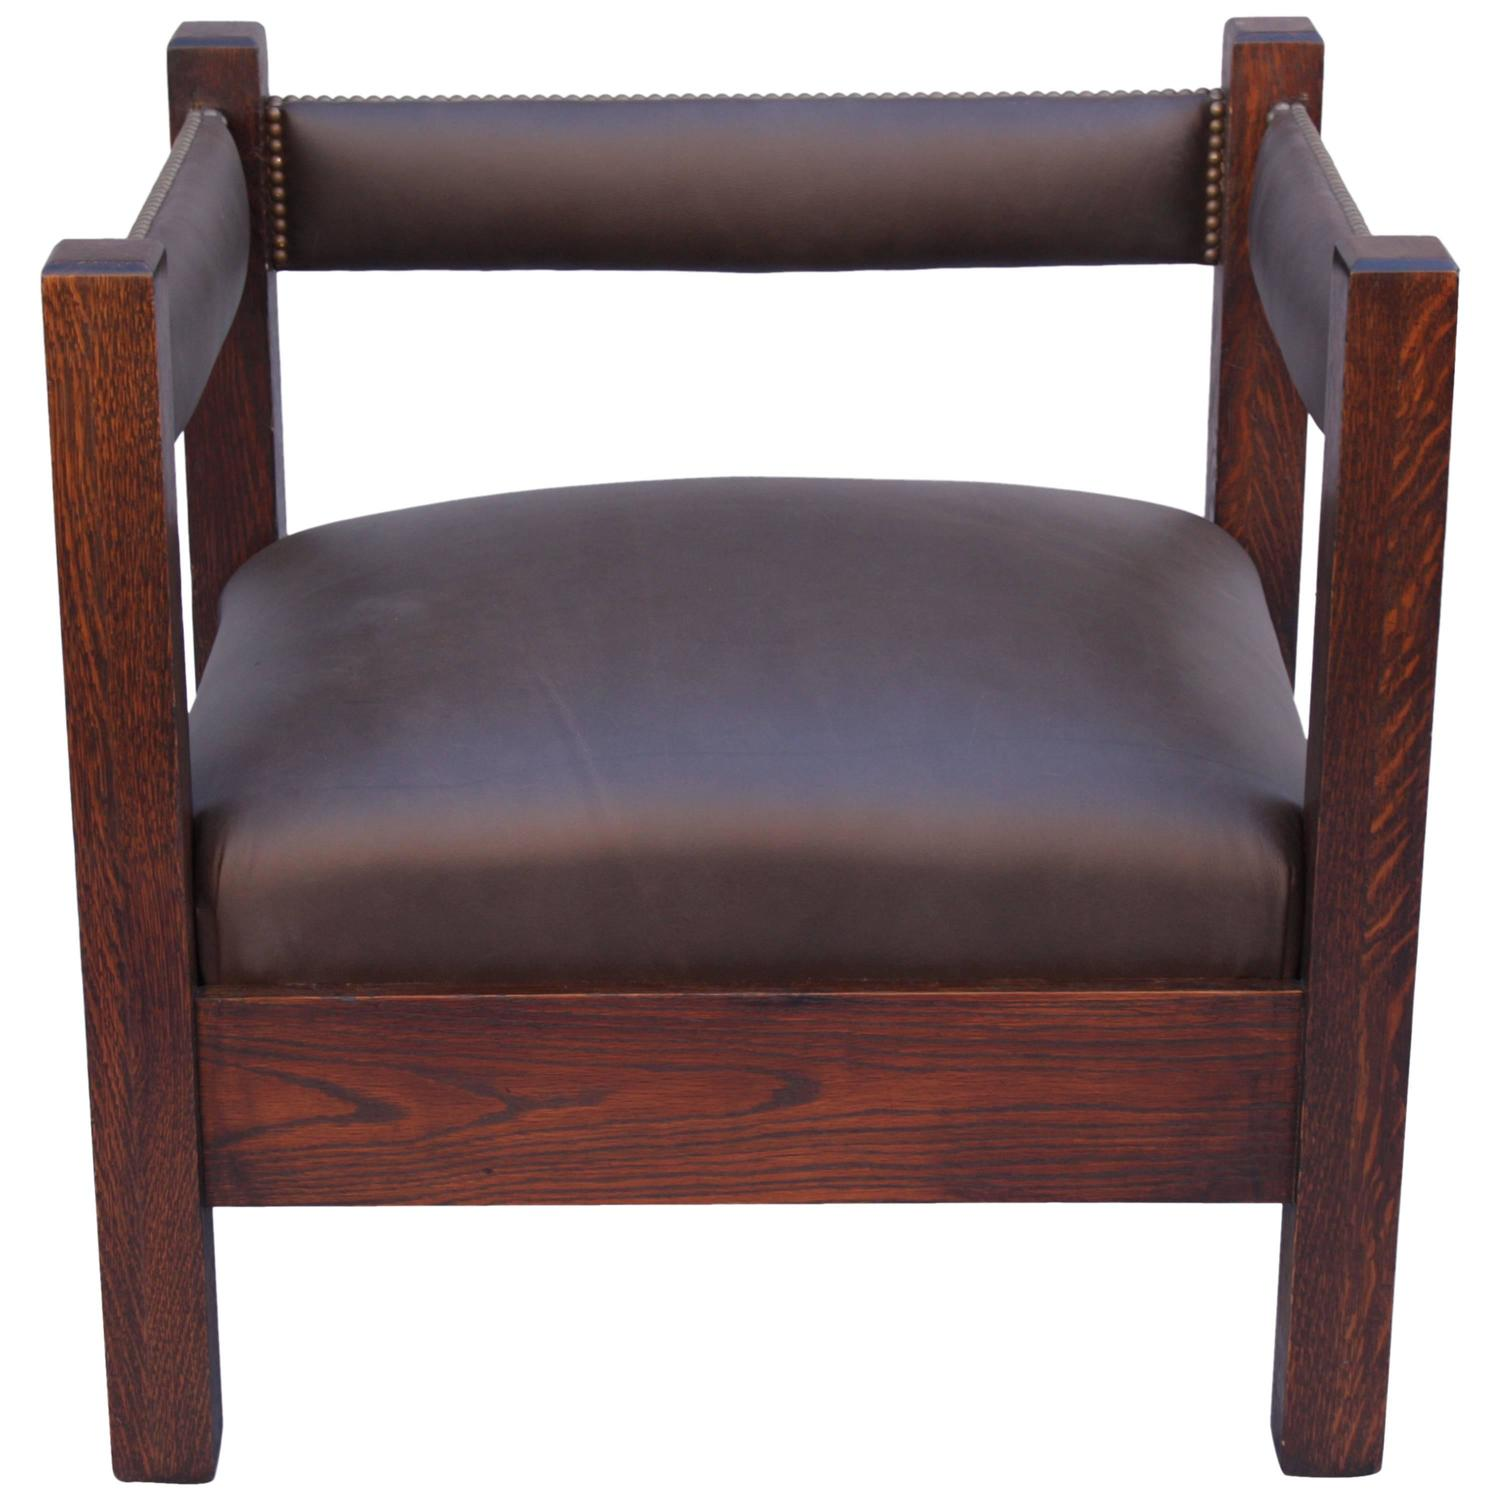 mission chairs for sale learning chair fisher price antique arts and crafts cube at 1stdibs